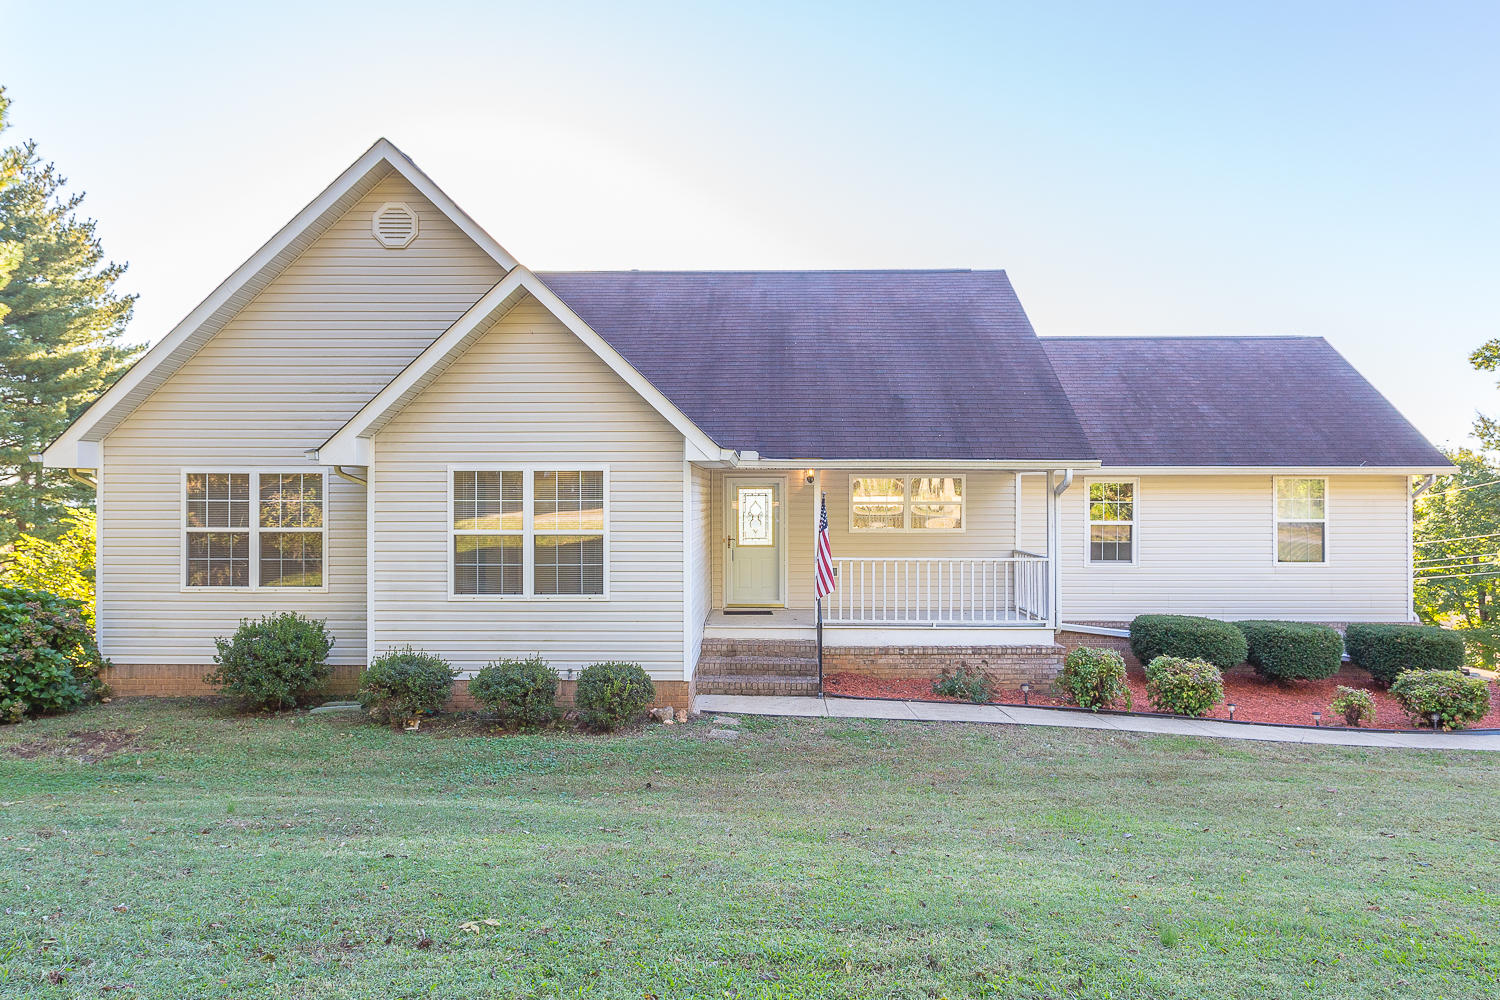 1501 Ridge Point Rd, Hixson, TN 37343